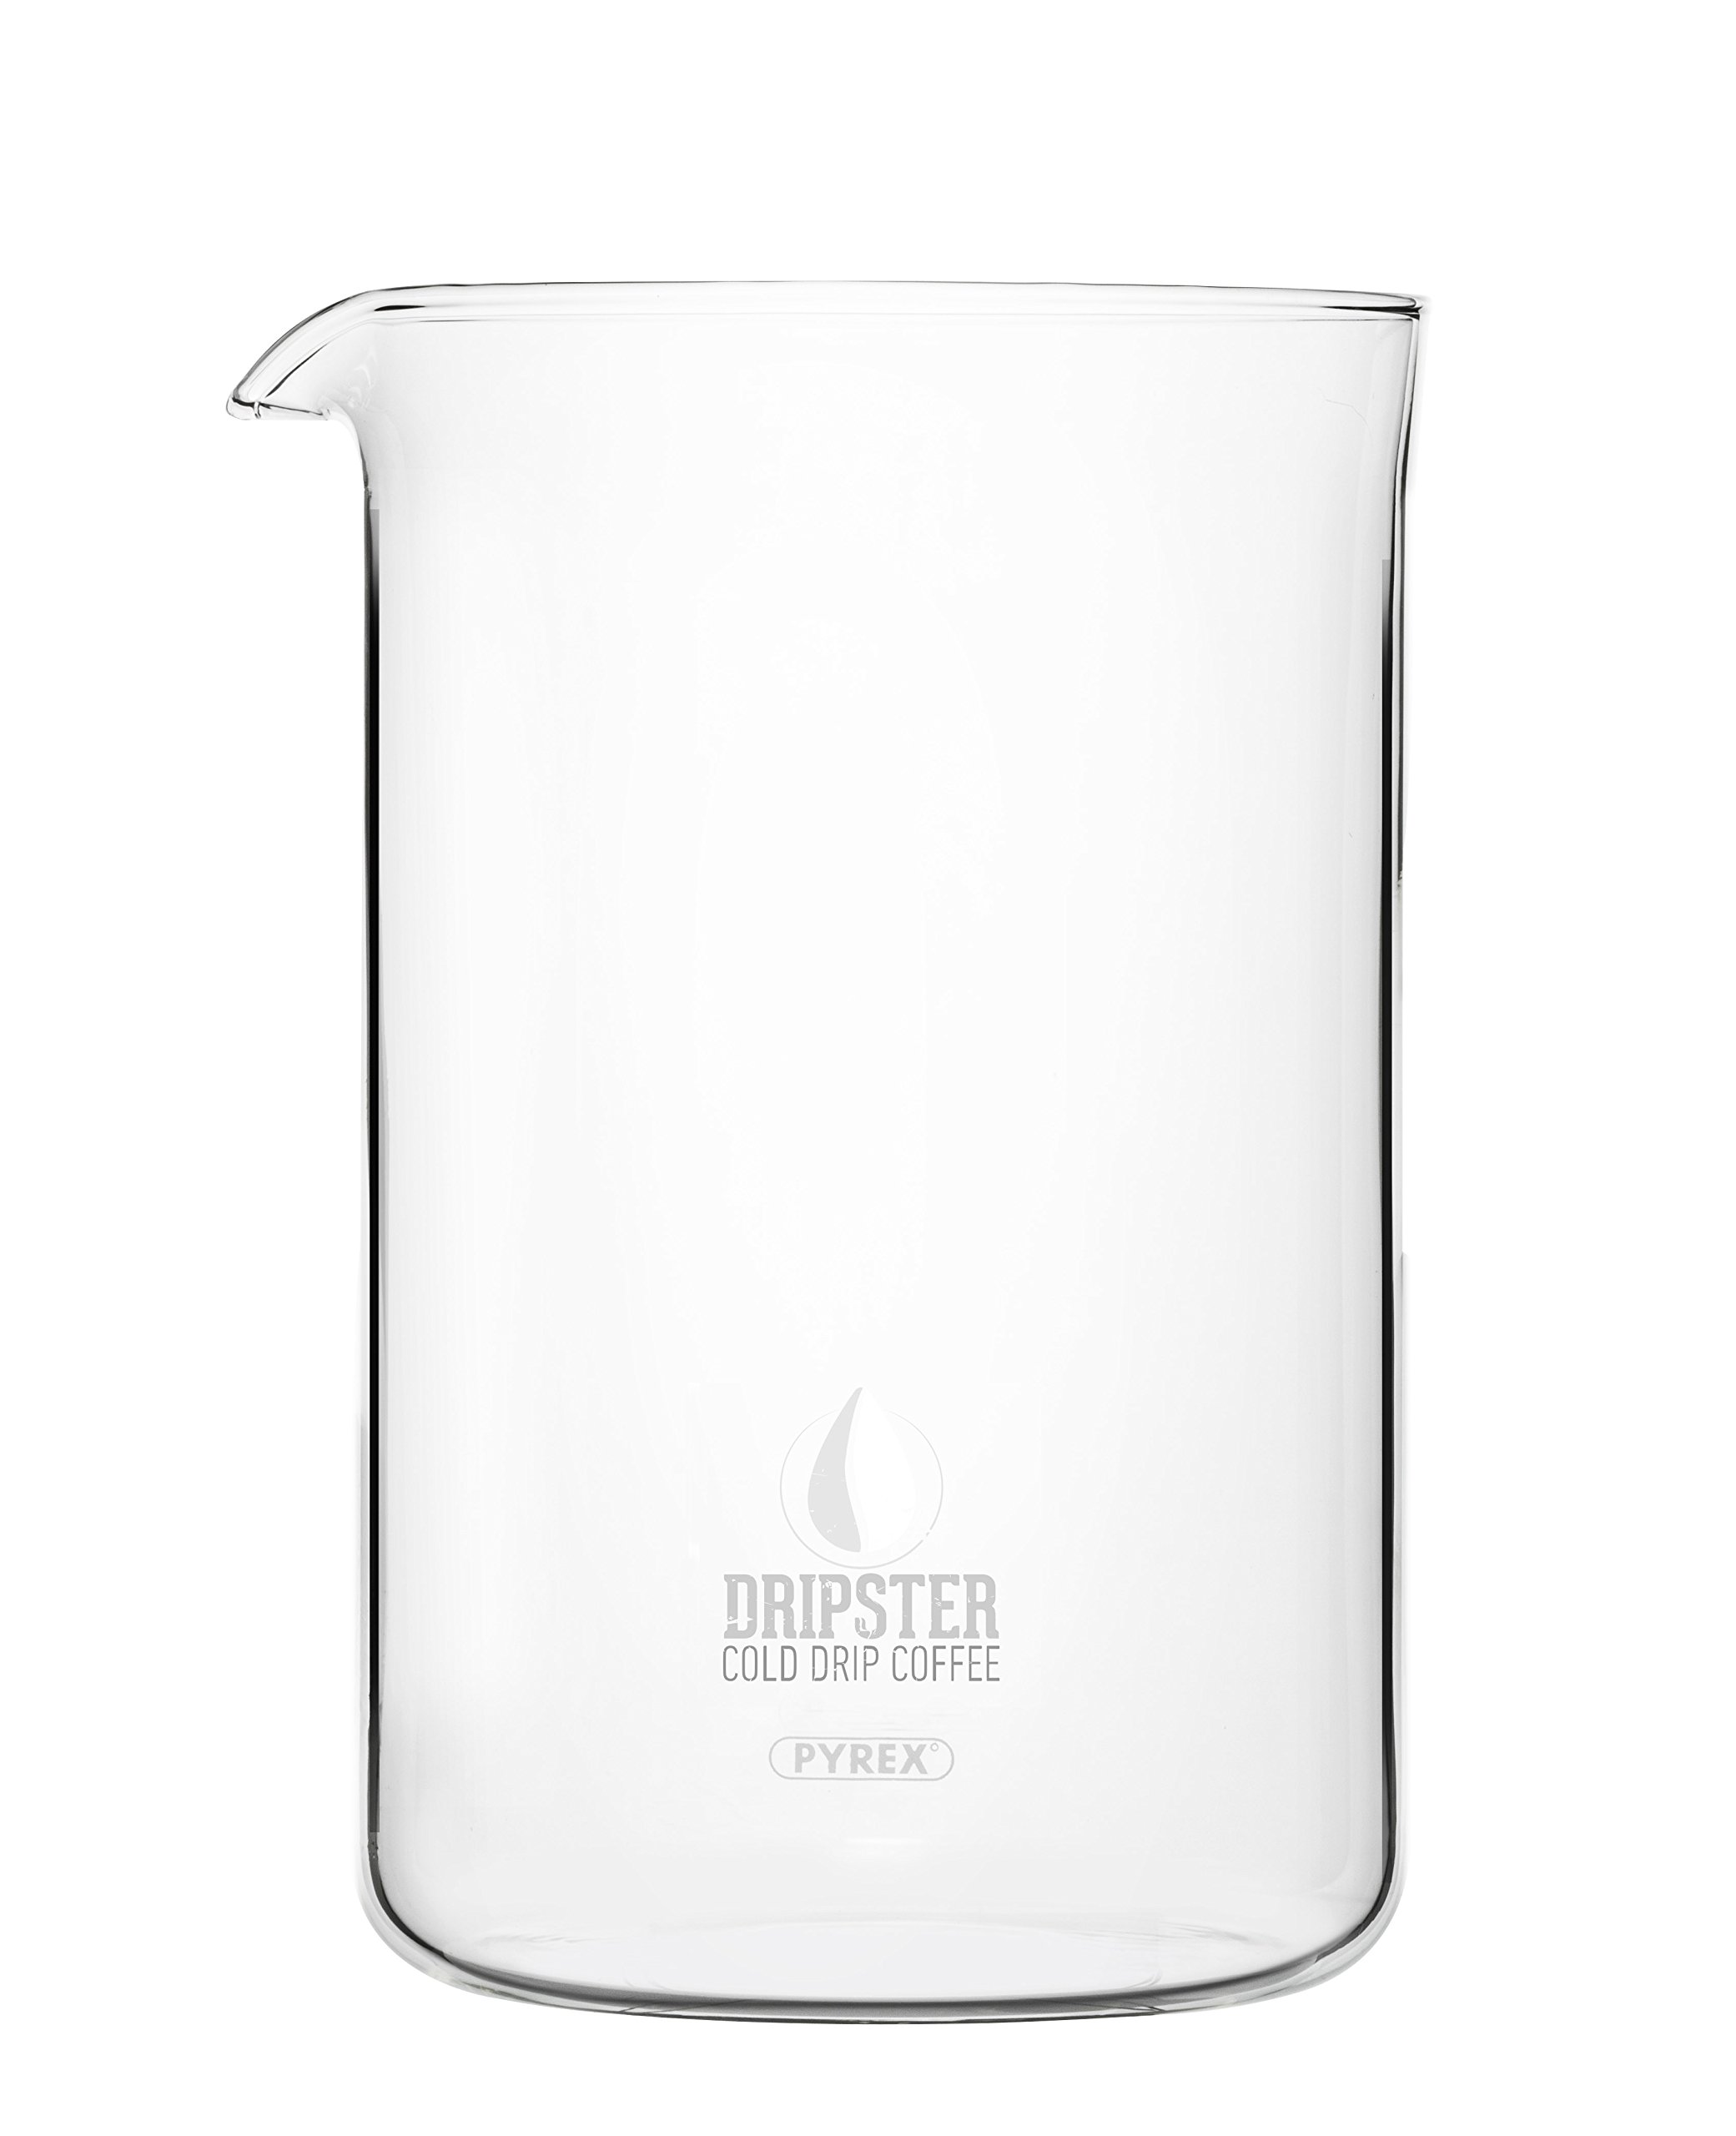 DRIPSTER-Cold-Brew-Dripper-4-Cups-600ml-Cold-Drip-Coffee-Maker-for-ColdBrew-Coffee-and-Tea